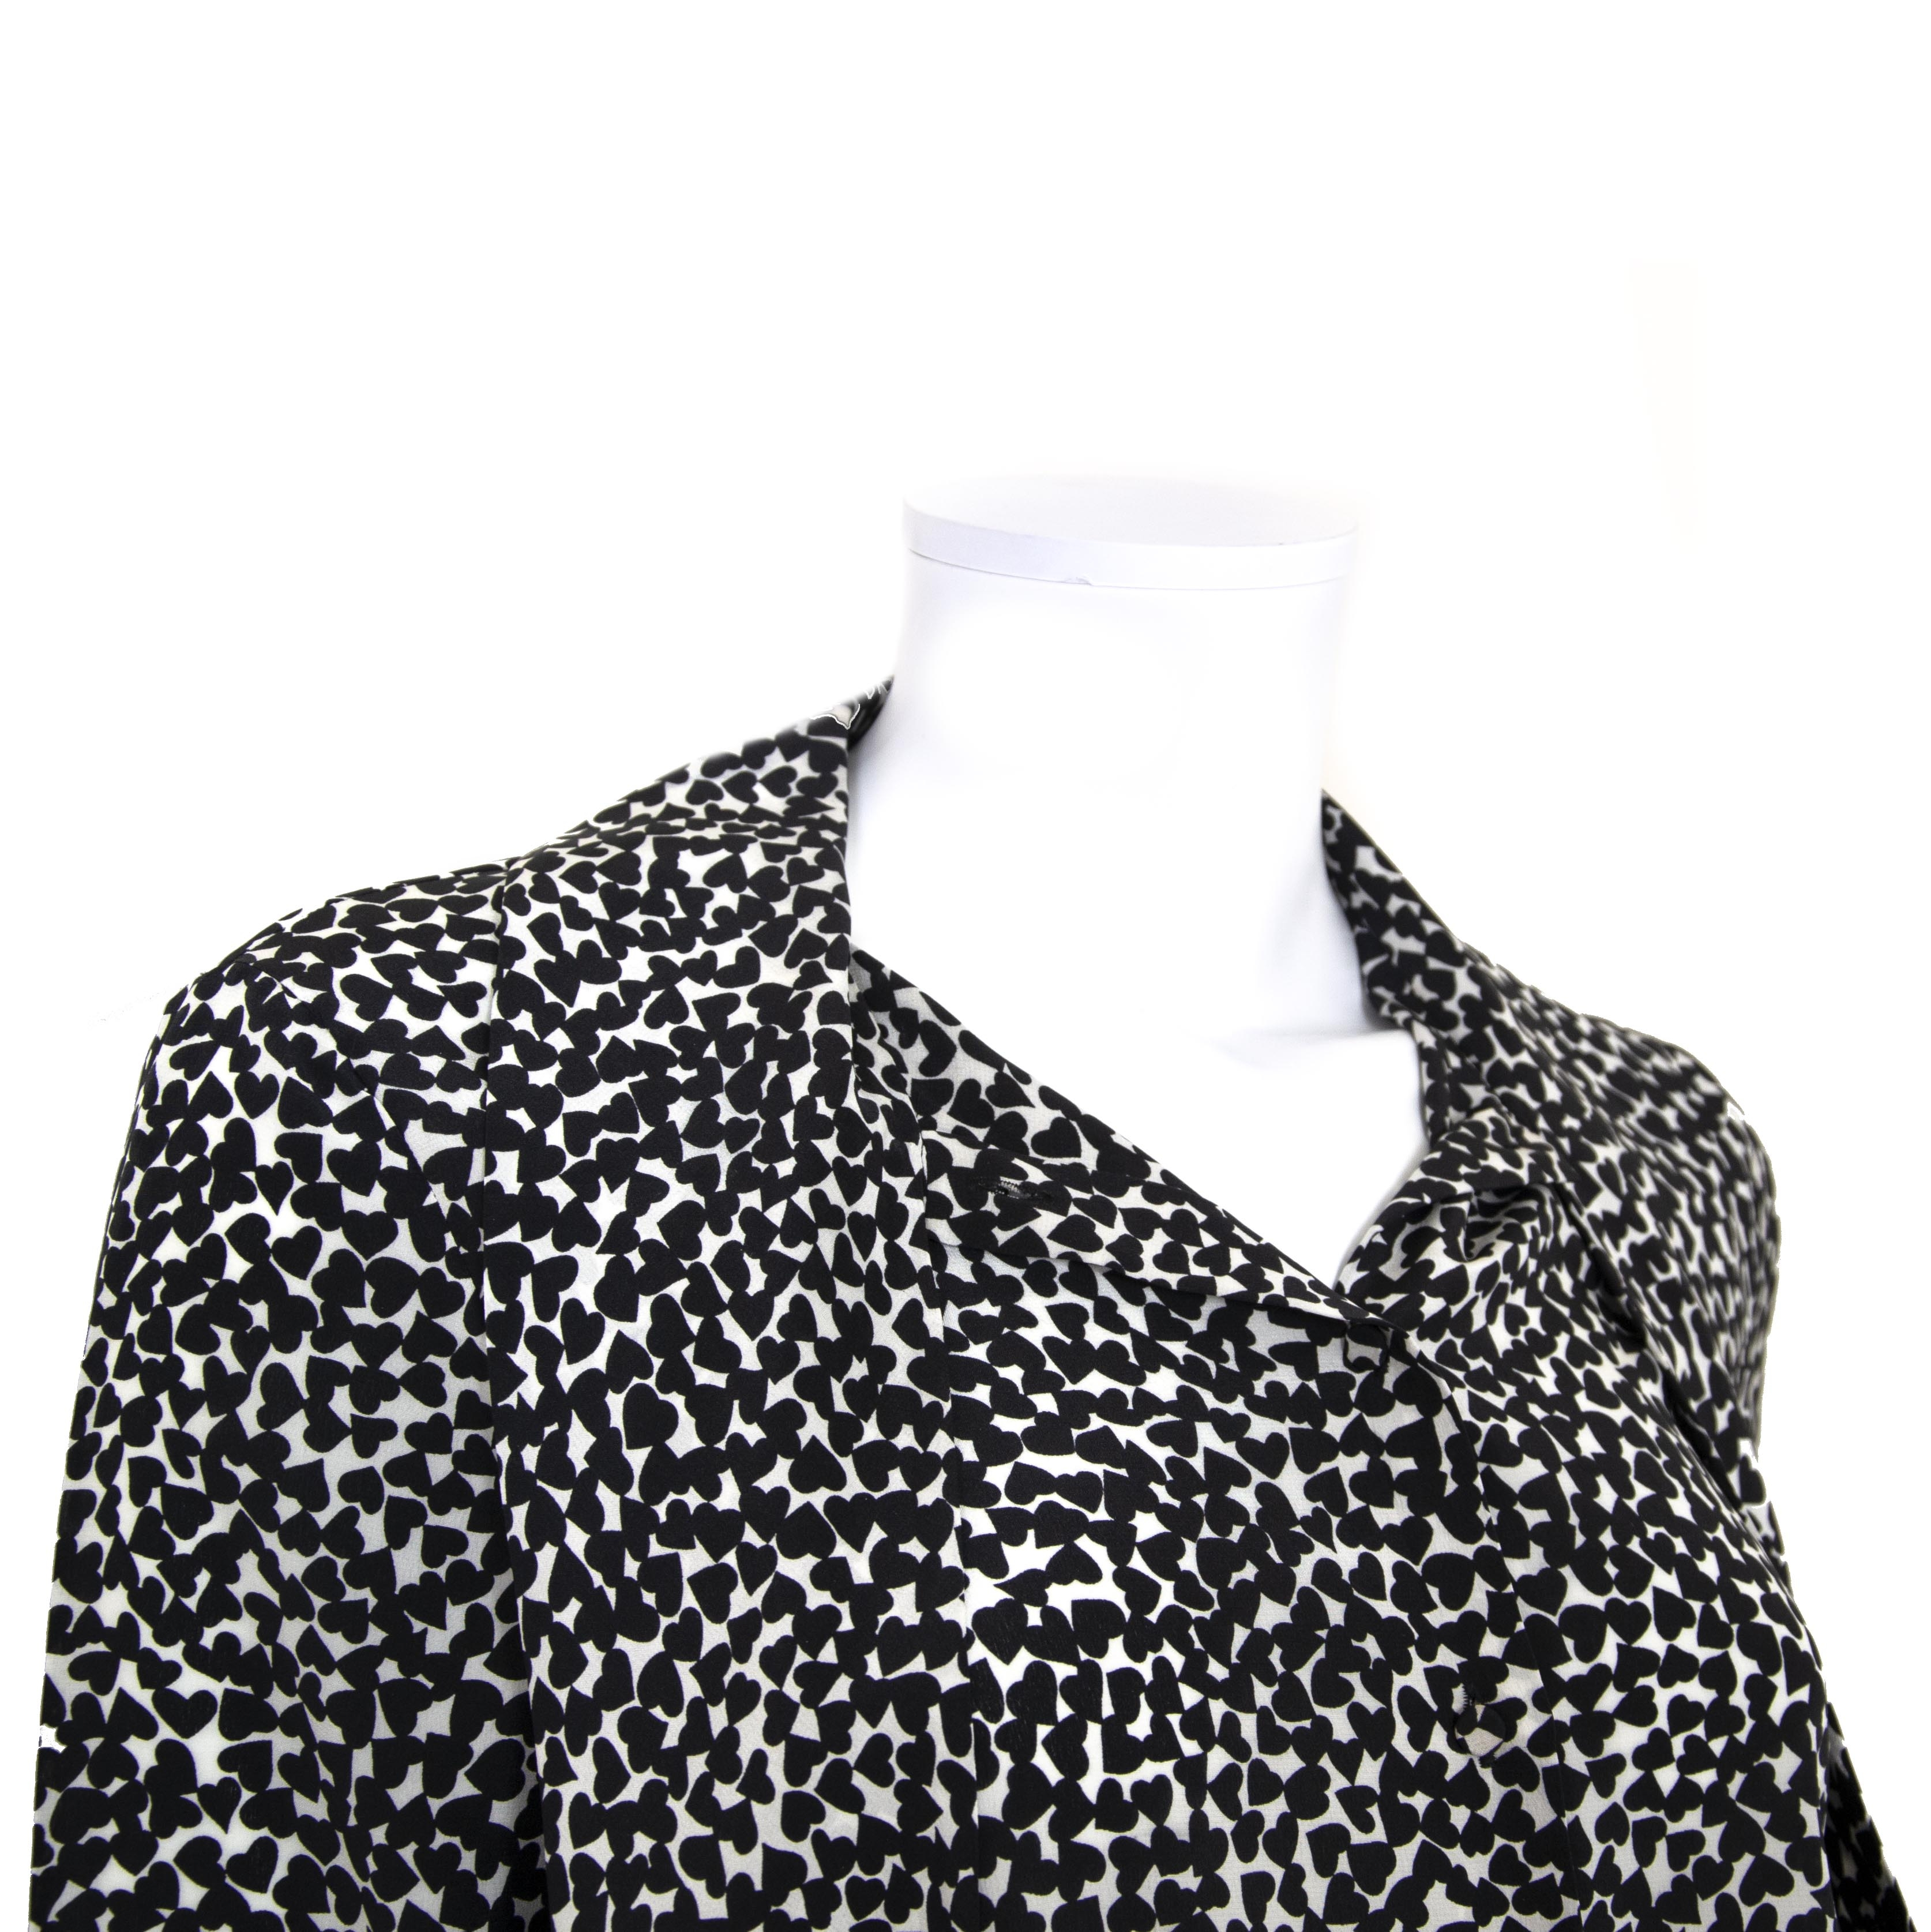 buy Saint Laurent Silk Black And White Blouse - Size FR 40 at labellov for the best price